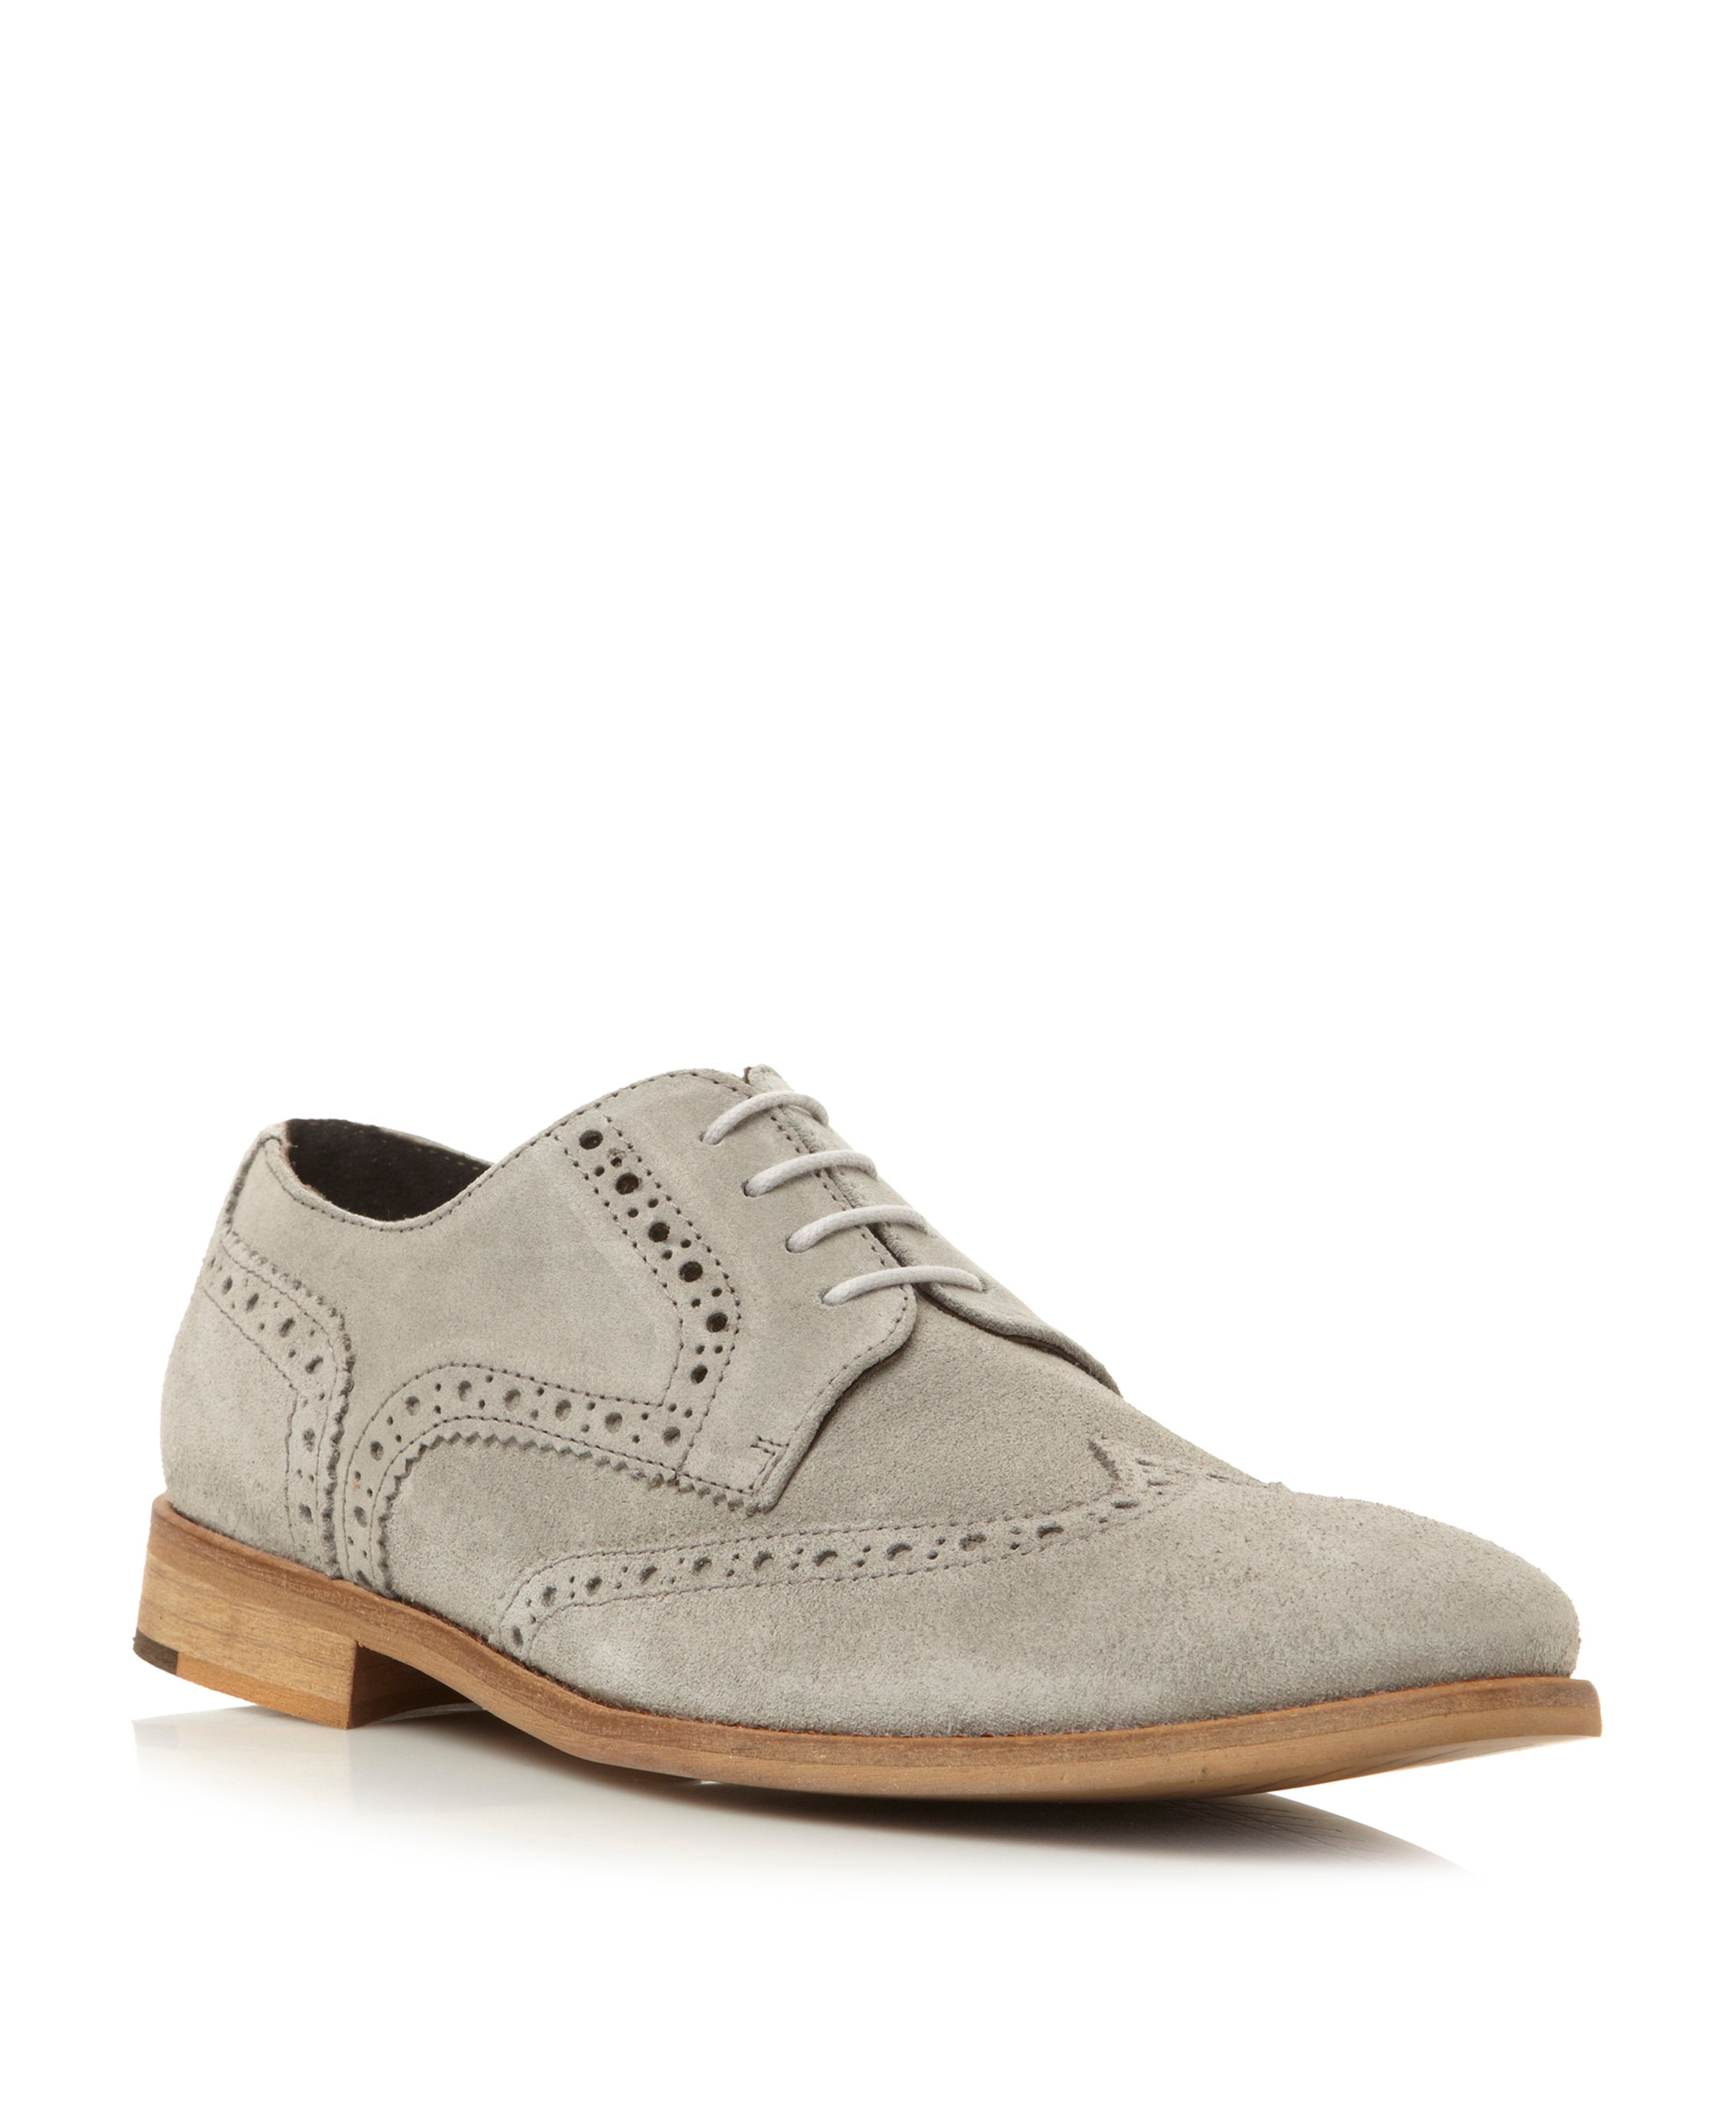 Aston suede lace up brogues